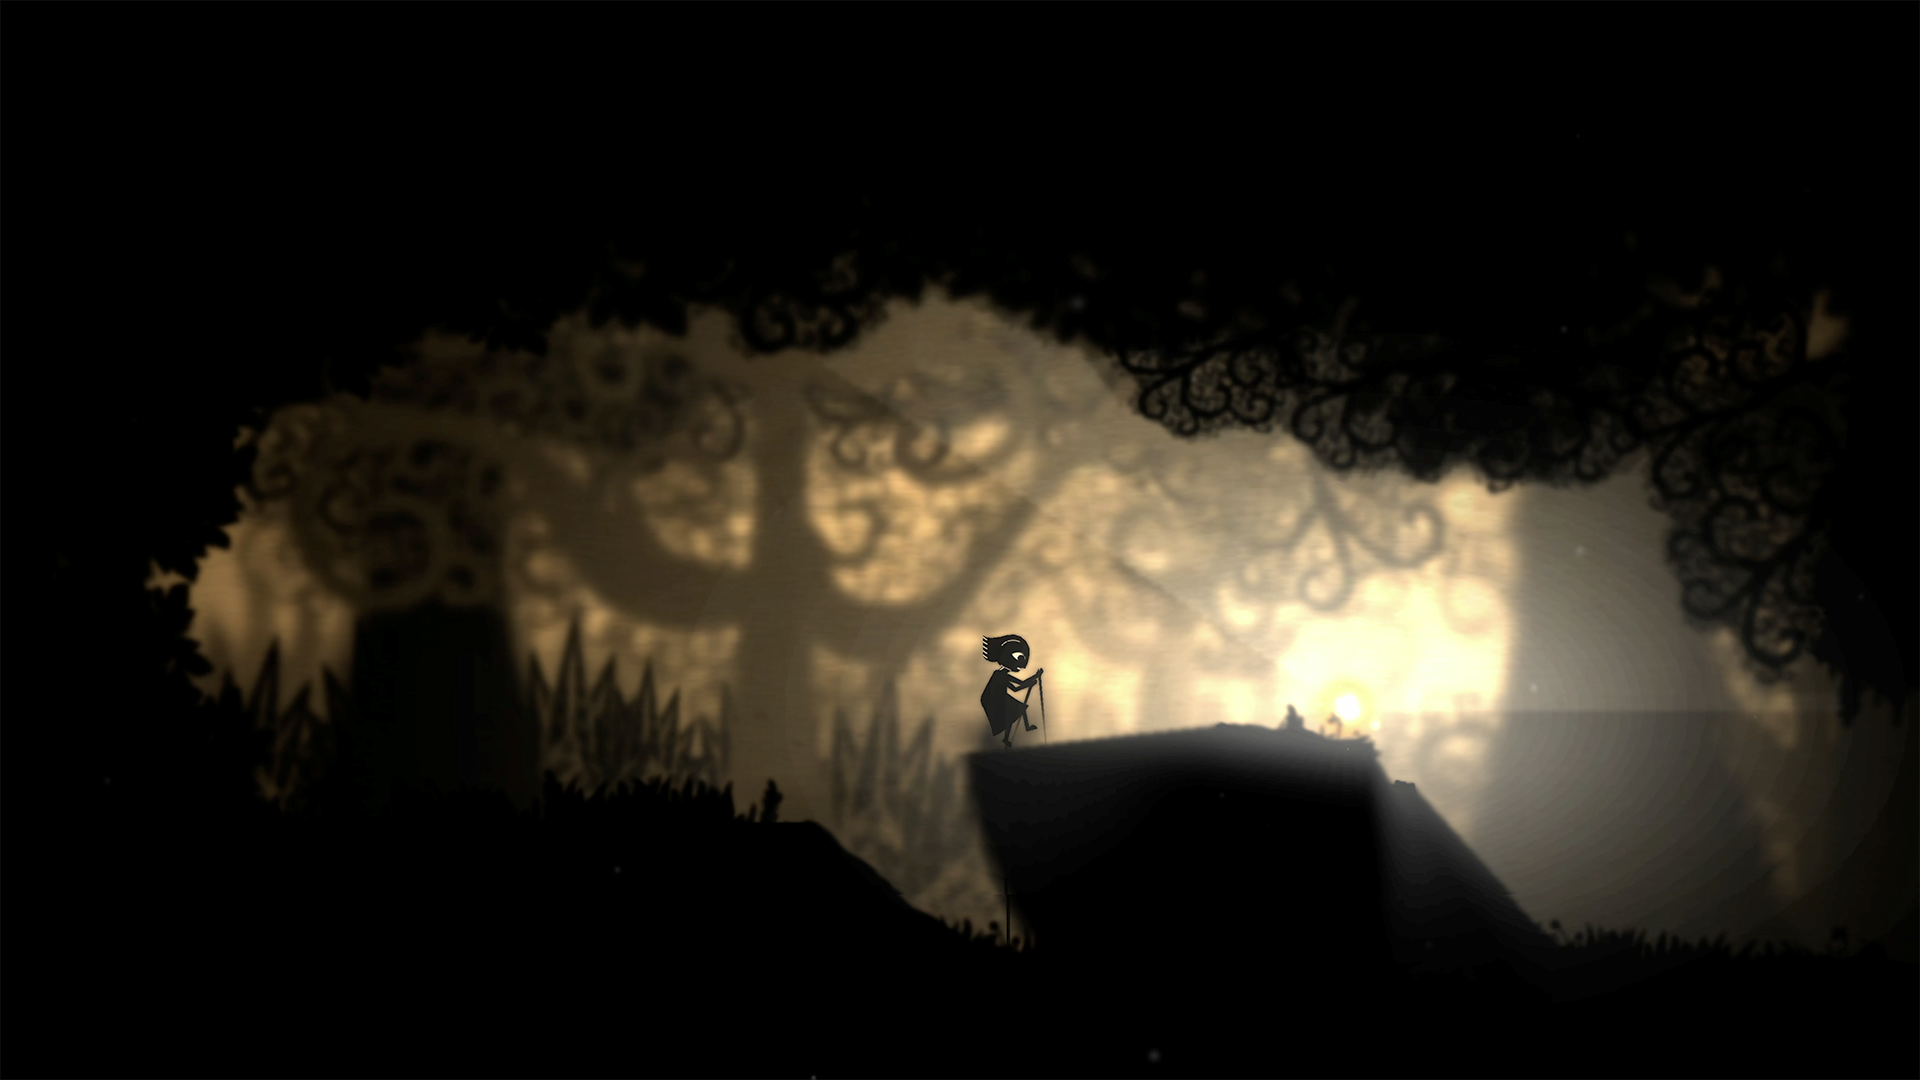 Use the shadows created with your light to solve puzzles and progress through the game.